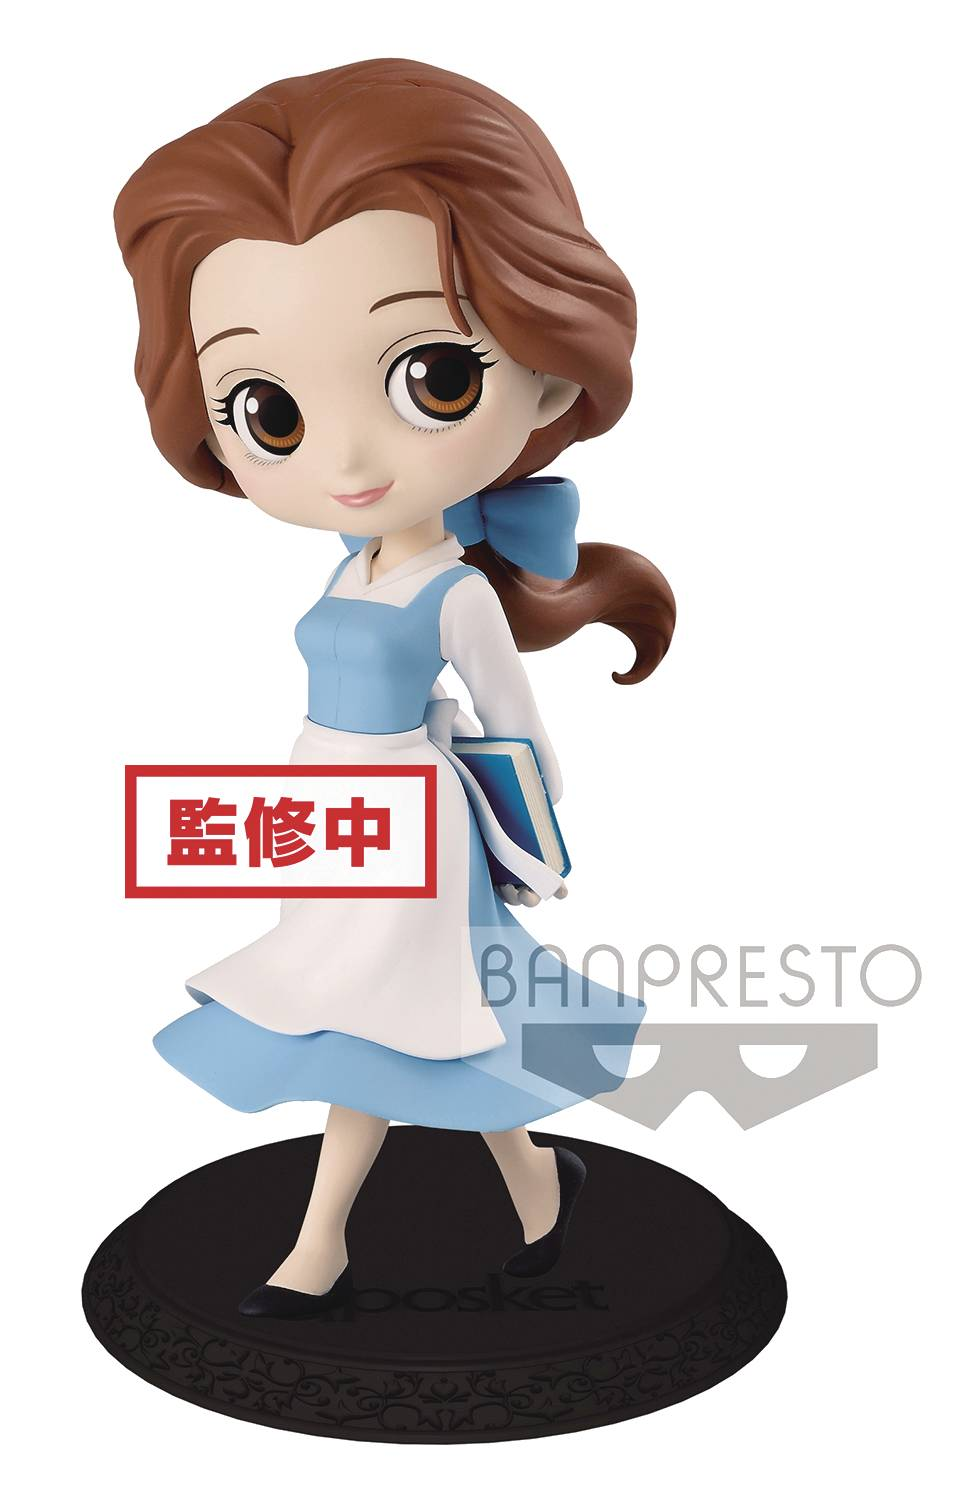 Banpresto Disney Belle Country Style Q-Posket Figure